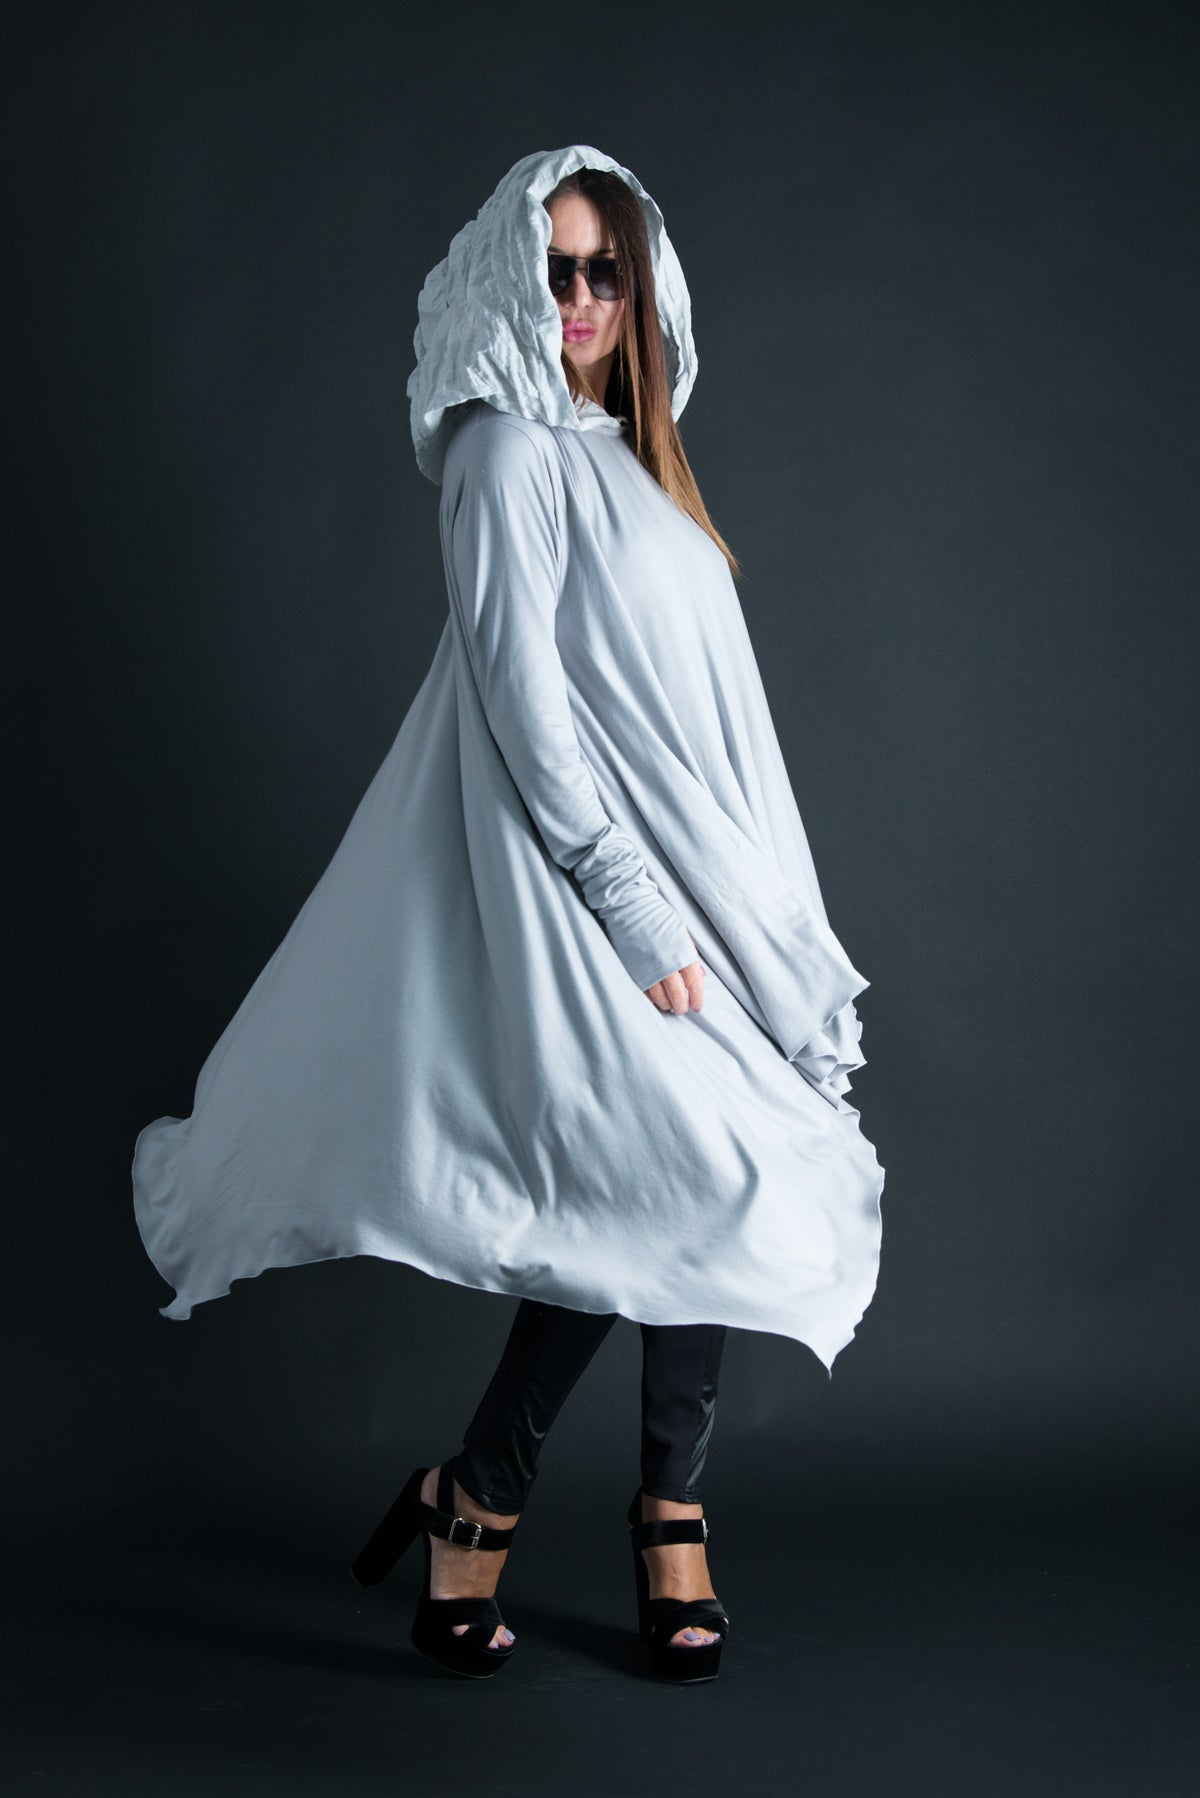 Hooded Light Grey Tunic, Long Sleeve Plus size Summer Top